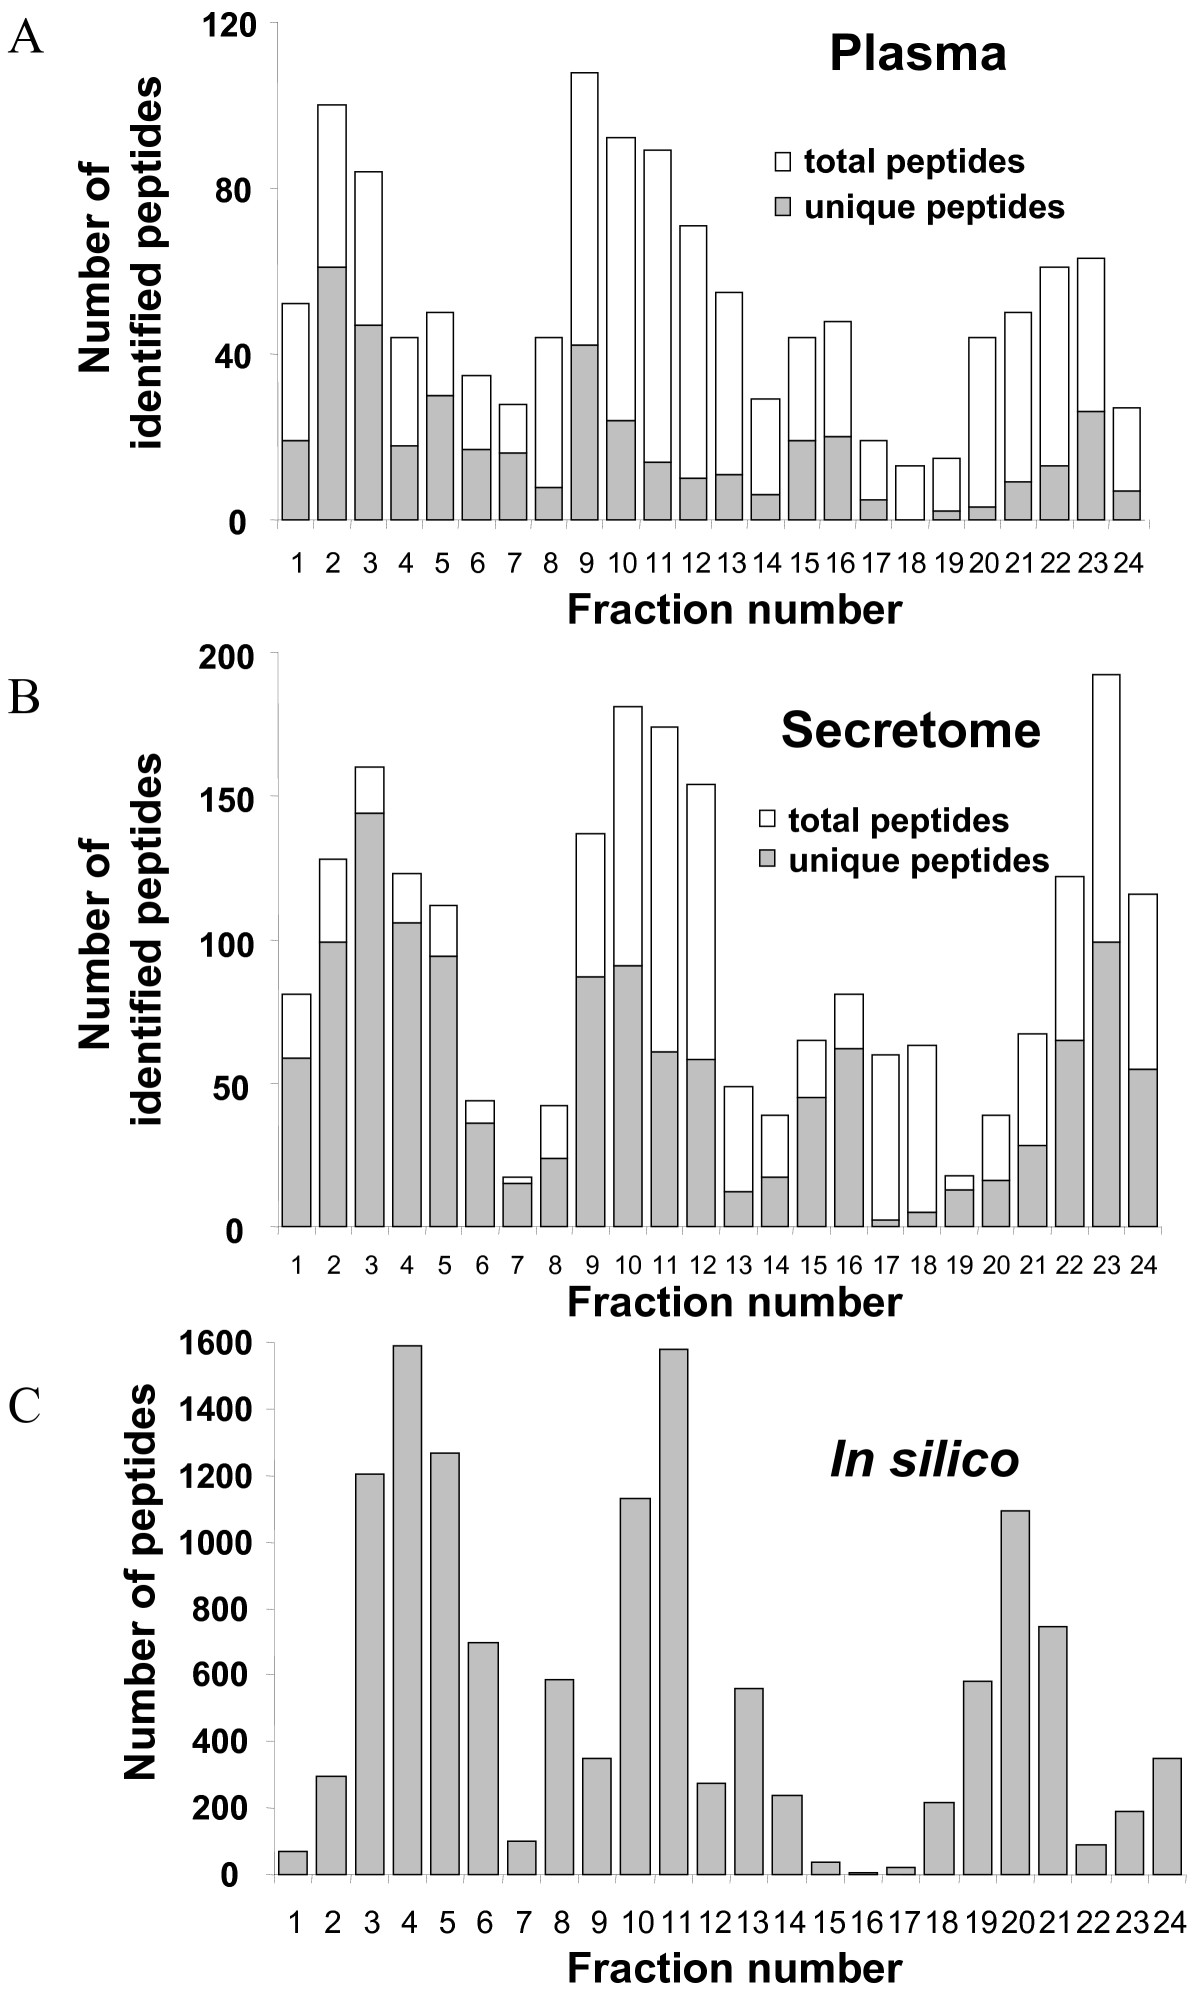 http://static-content.springer.com/image/art%3A10.1186%2F1477-5956-6-9/MediaObjects/12953_2007_Article_77_Fig3_HTML.jpg